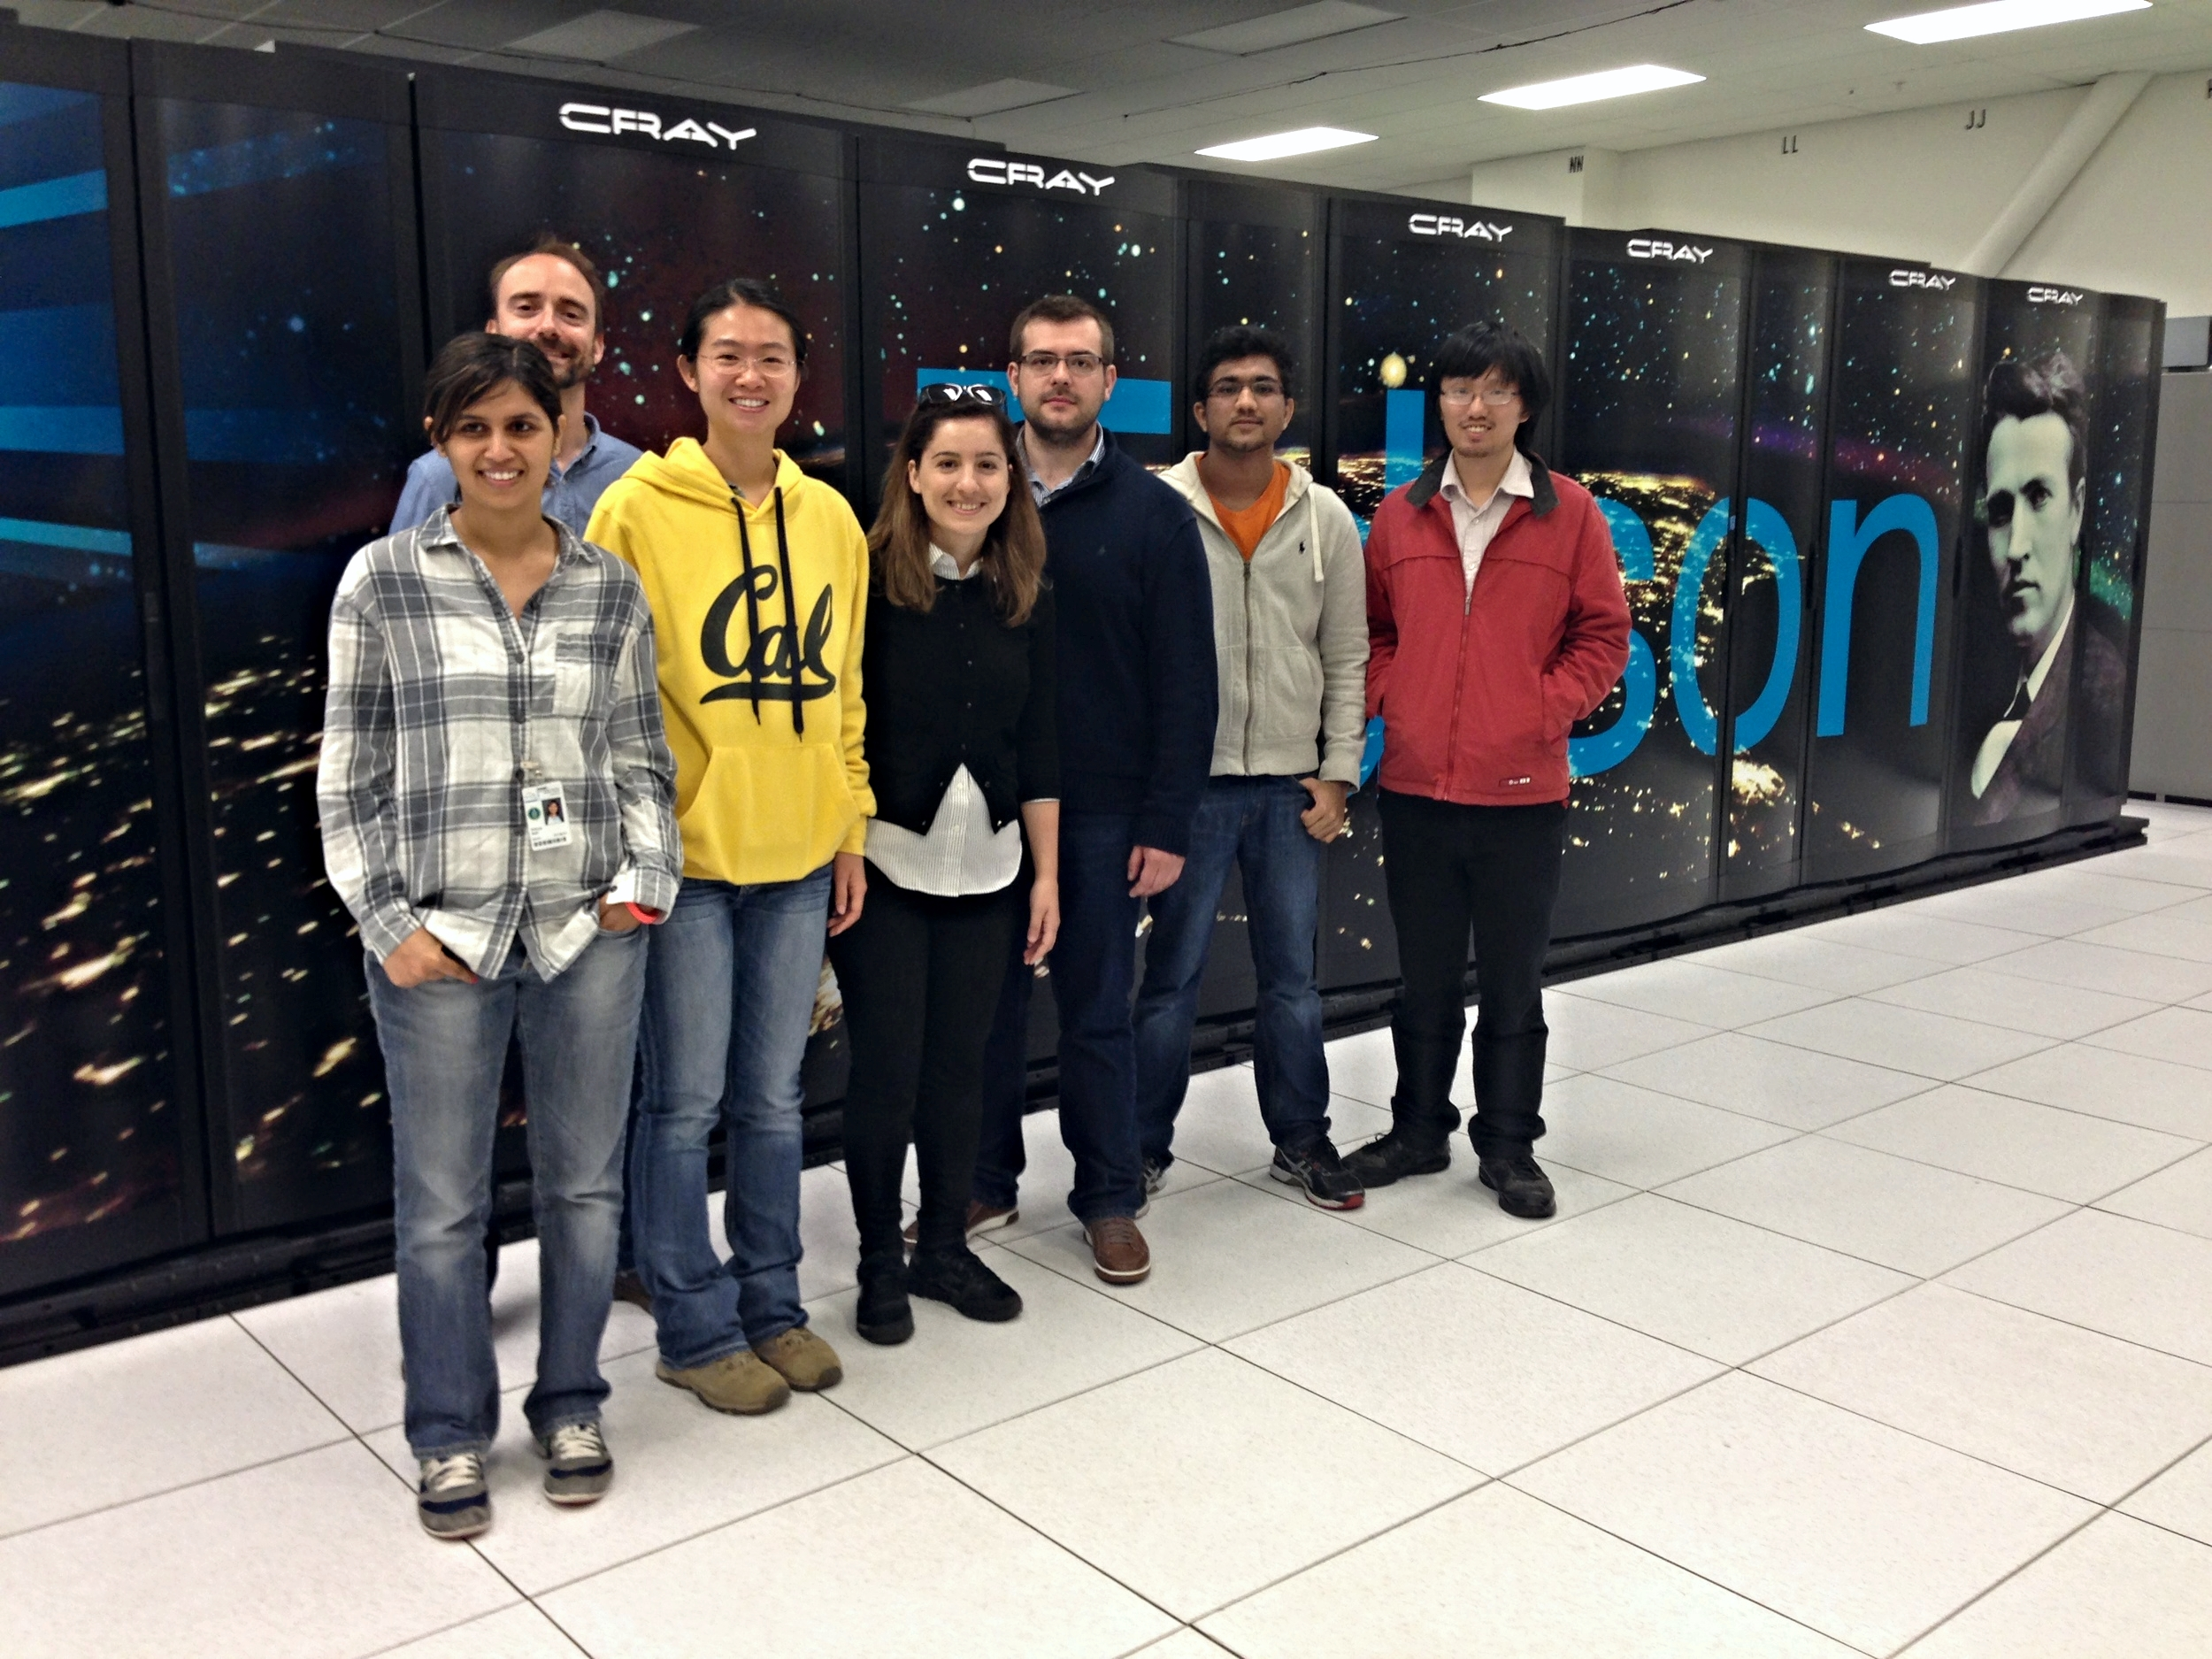 With fellow interns in front of Edison, one of the most powerful supercomputers in the world housed at the National Energy Research Scientific Computing Center in Oakland, CA.